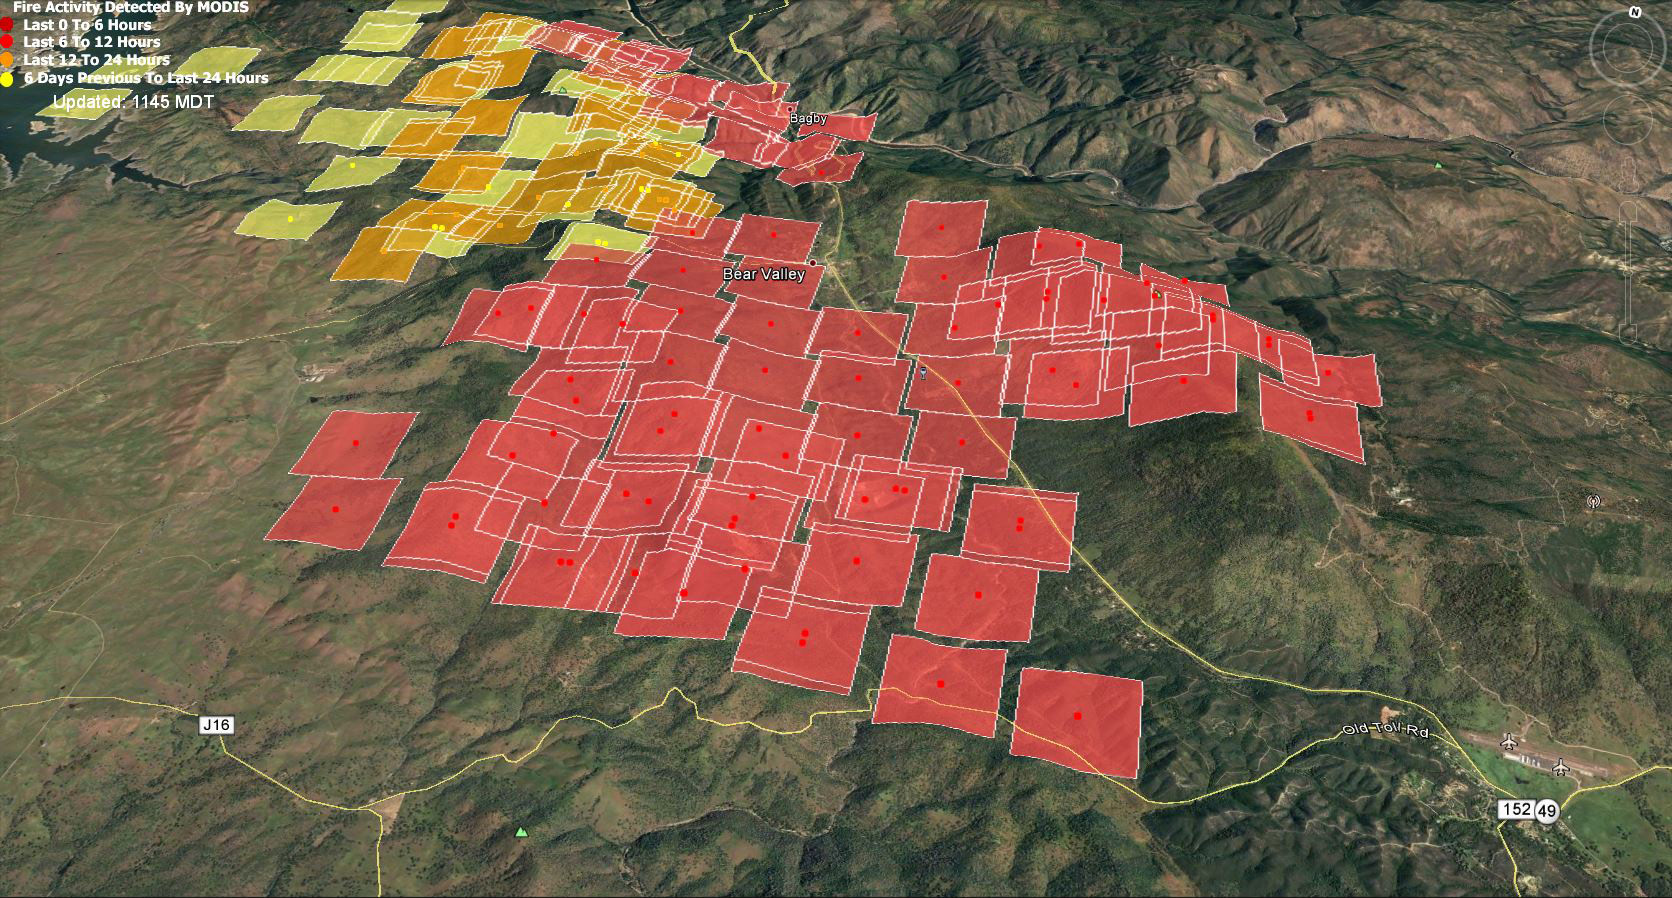 Tuesday July 18 2017 Updates On Detwiler Wildfire In Mariposa County